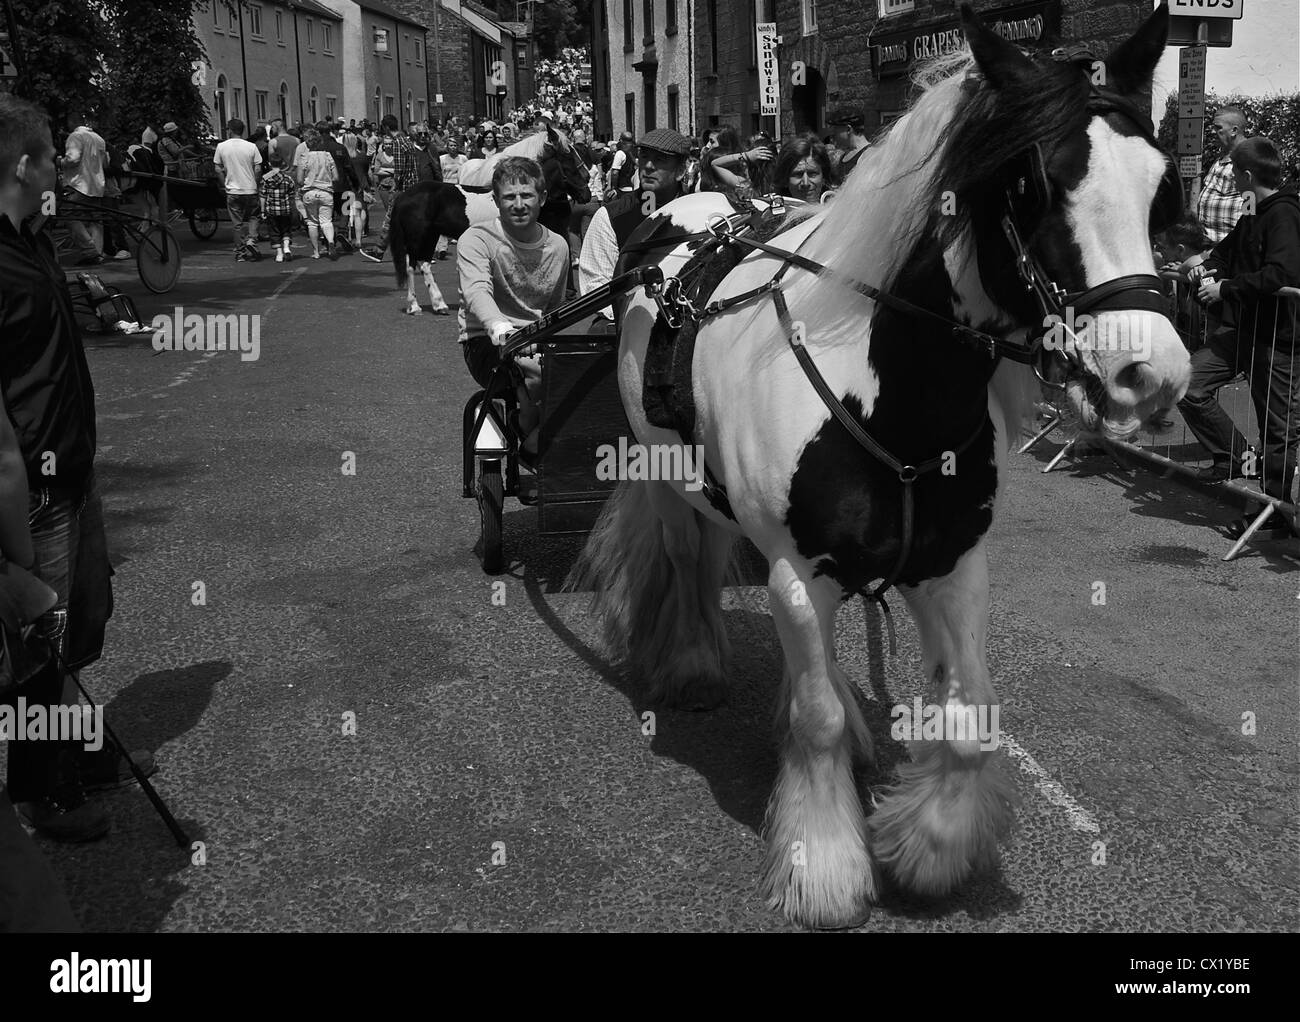 the annual gypsy horse fair in Appleby, westmorland, northwest england - Stock Image